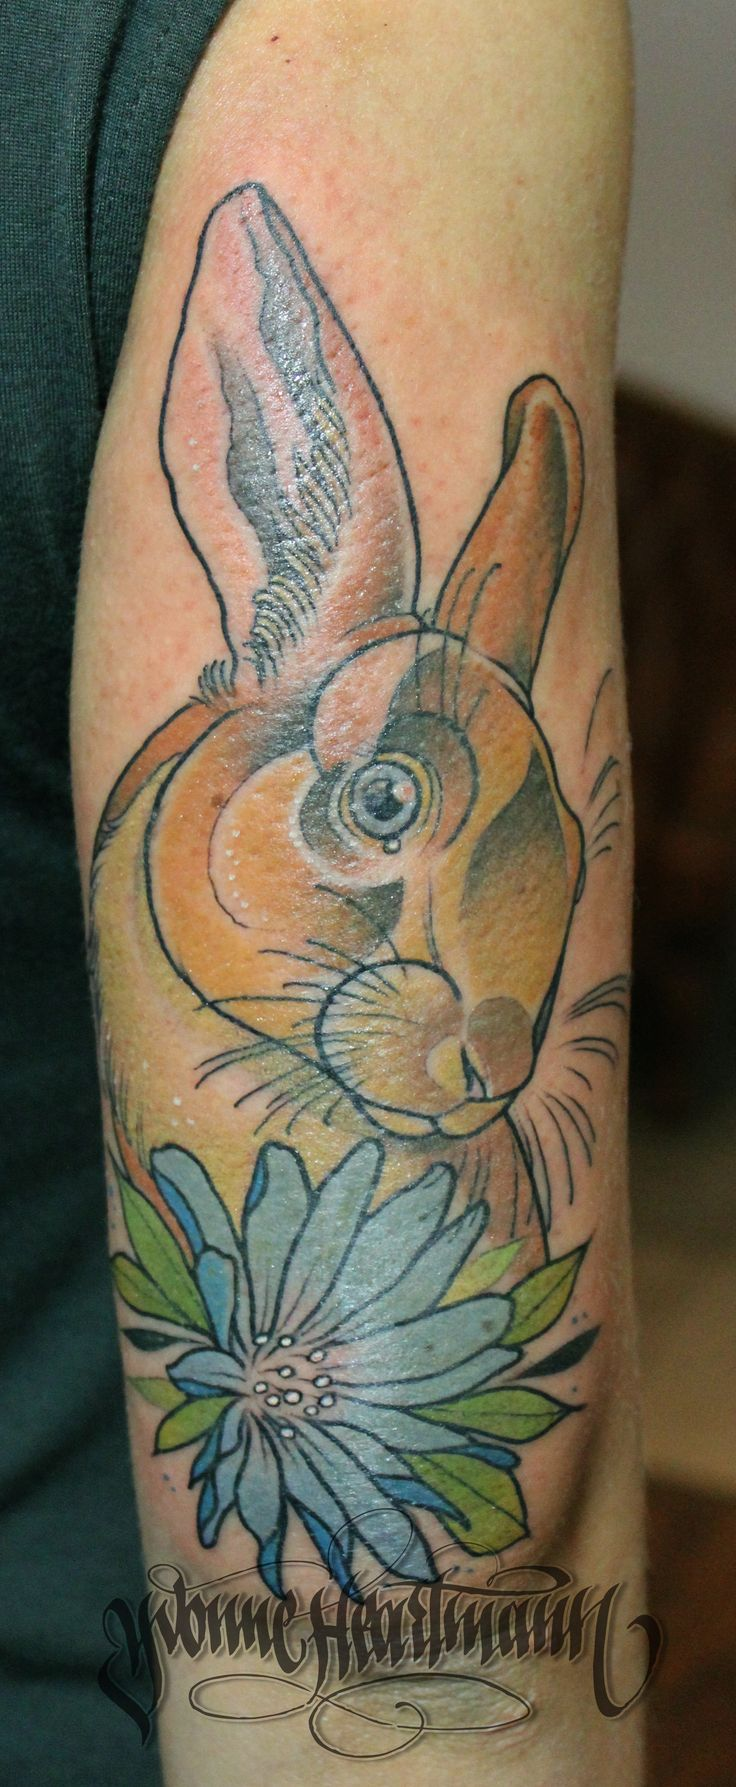 Bunny, rabbit tattoo i made few weeks ago :)